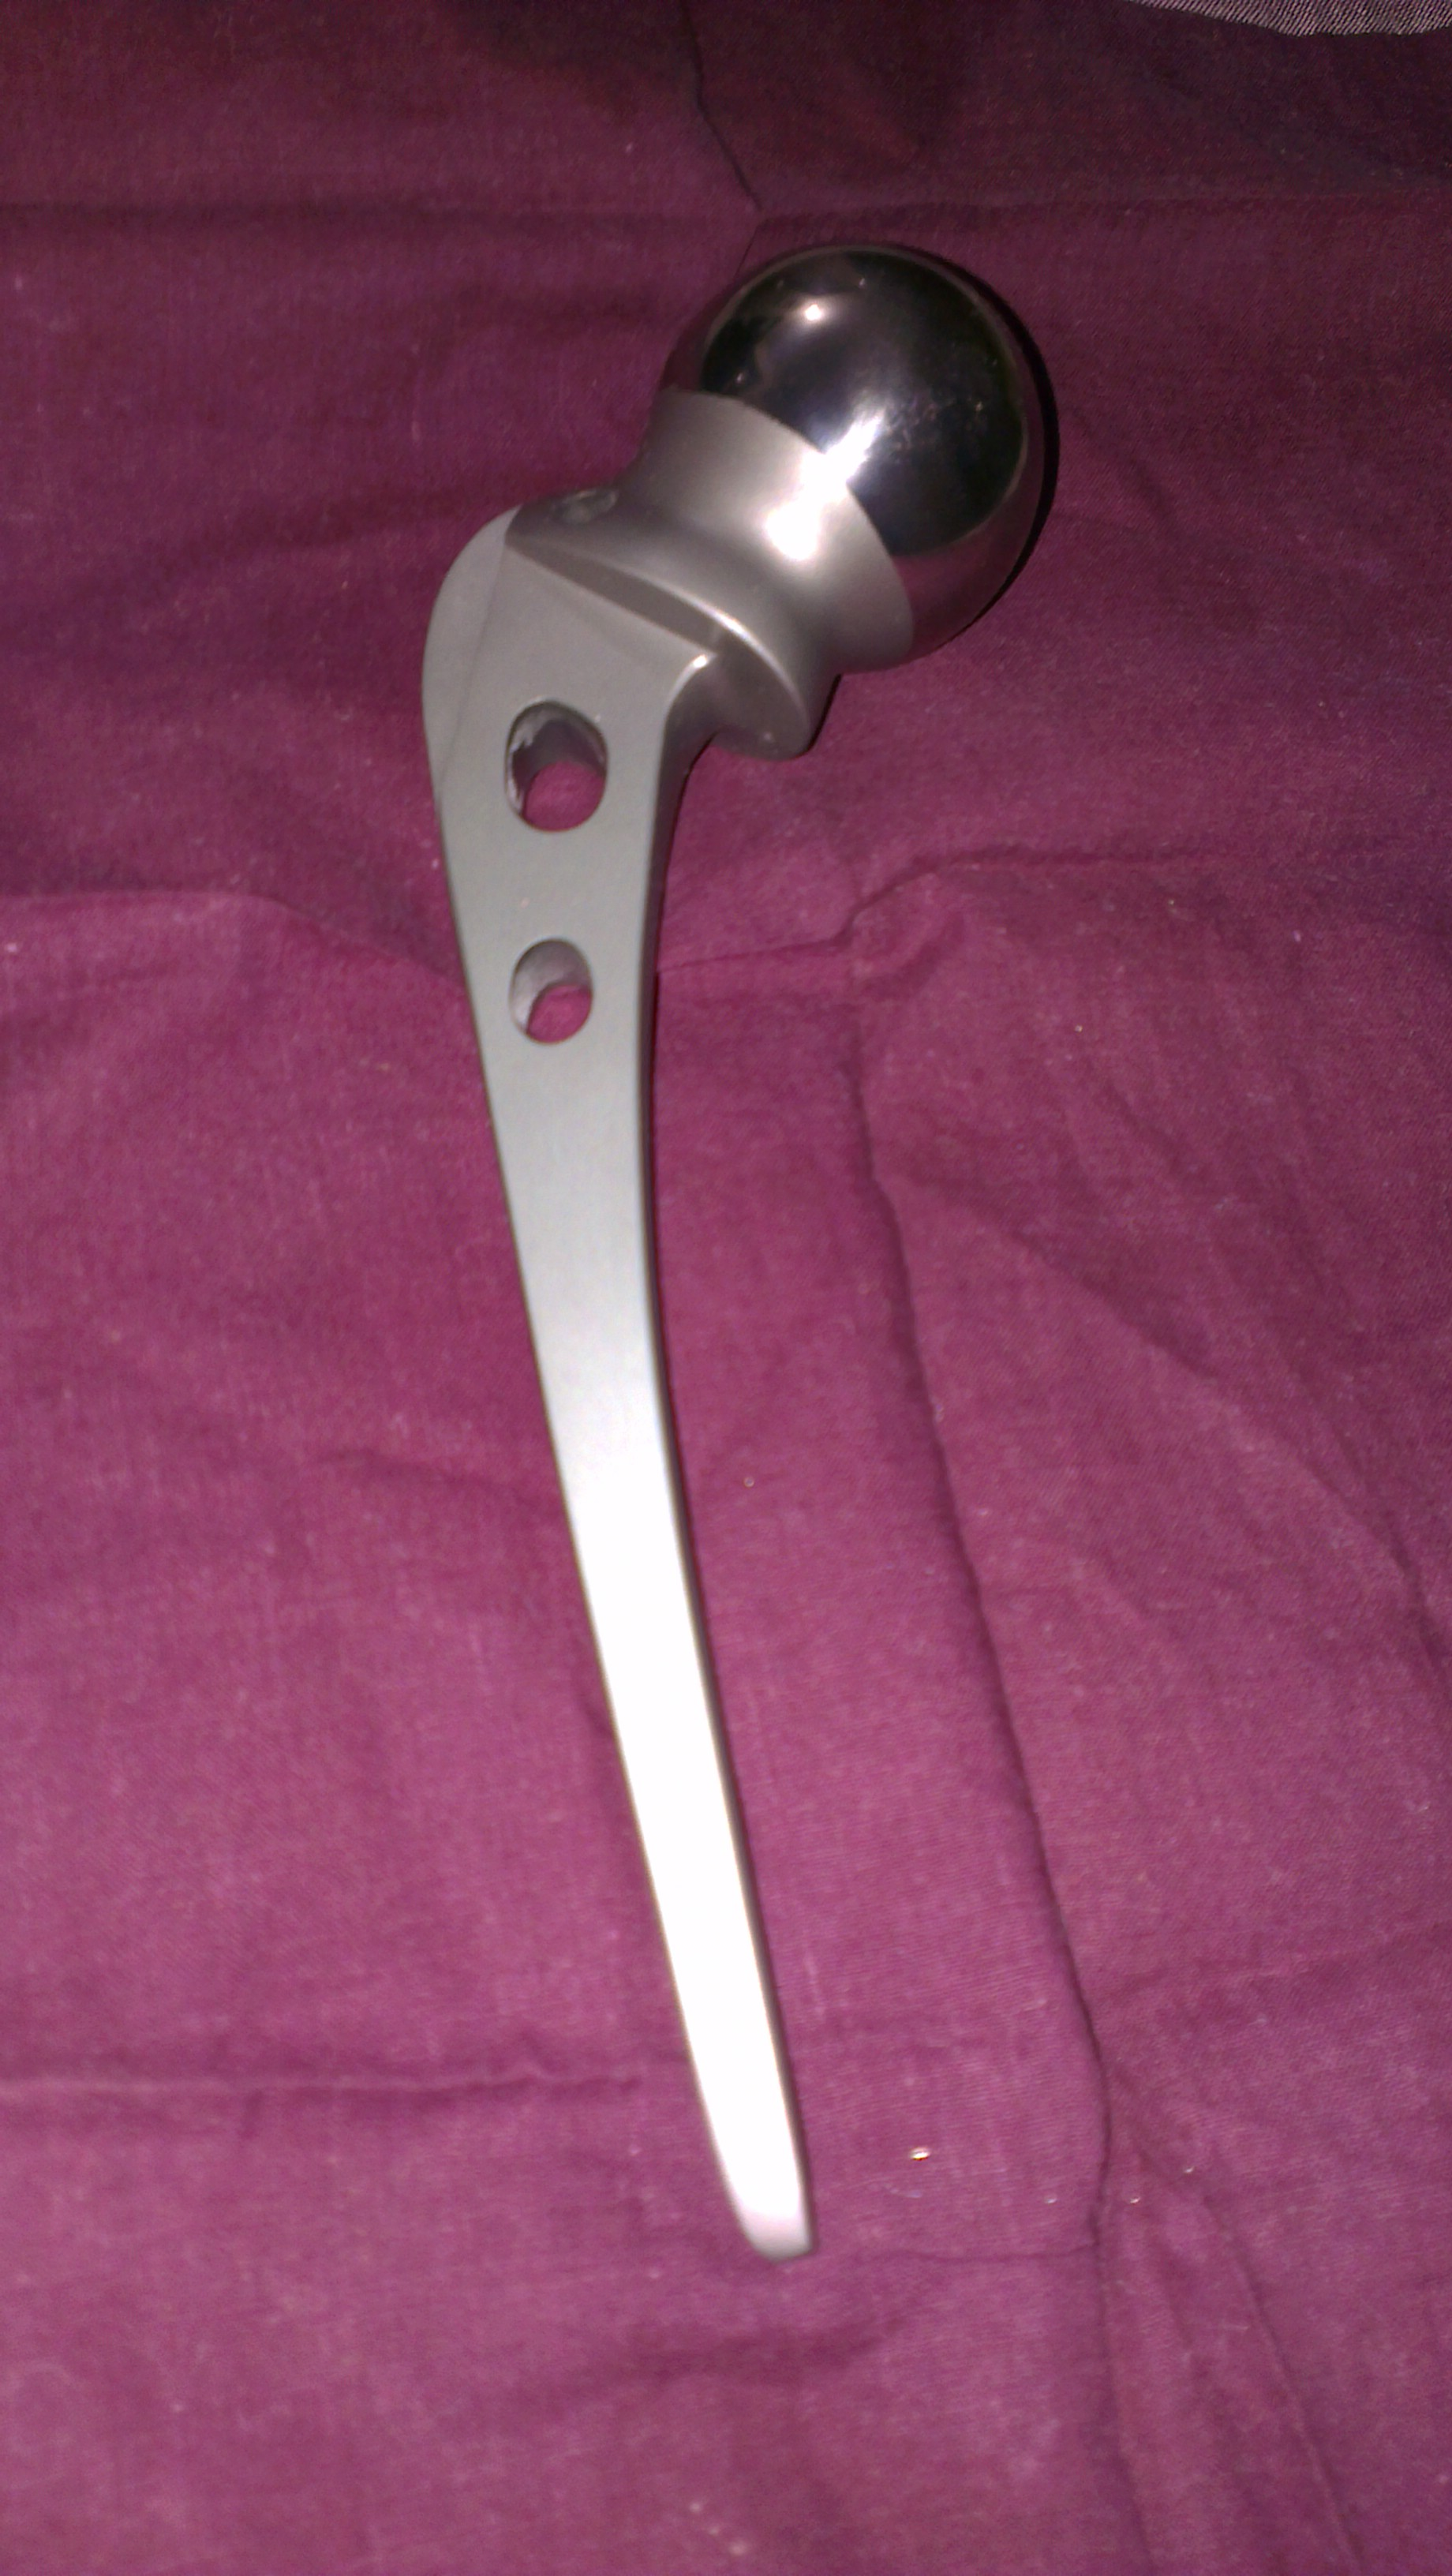 pregnant prothesis Pregnancy after amputation volume 10 number 4 july/august 2000 by zahra meghani   the couple married and soon afterward, mary became pregnant.